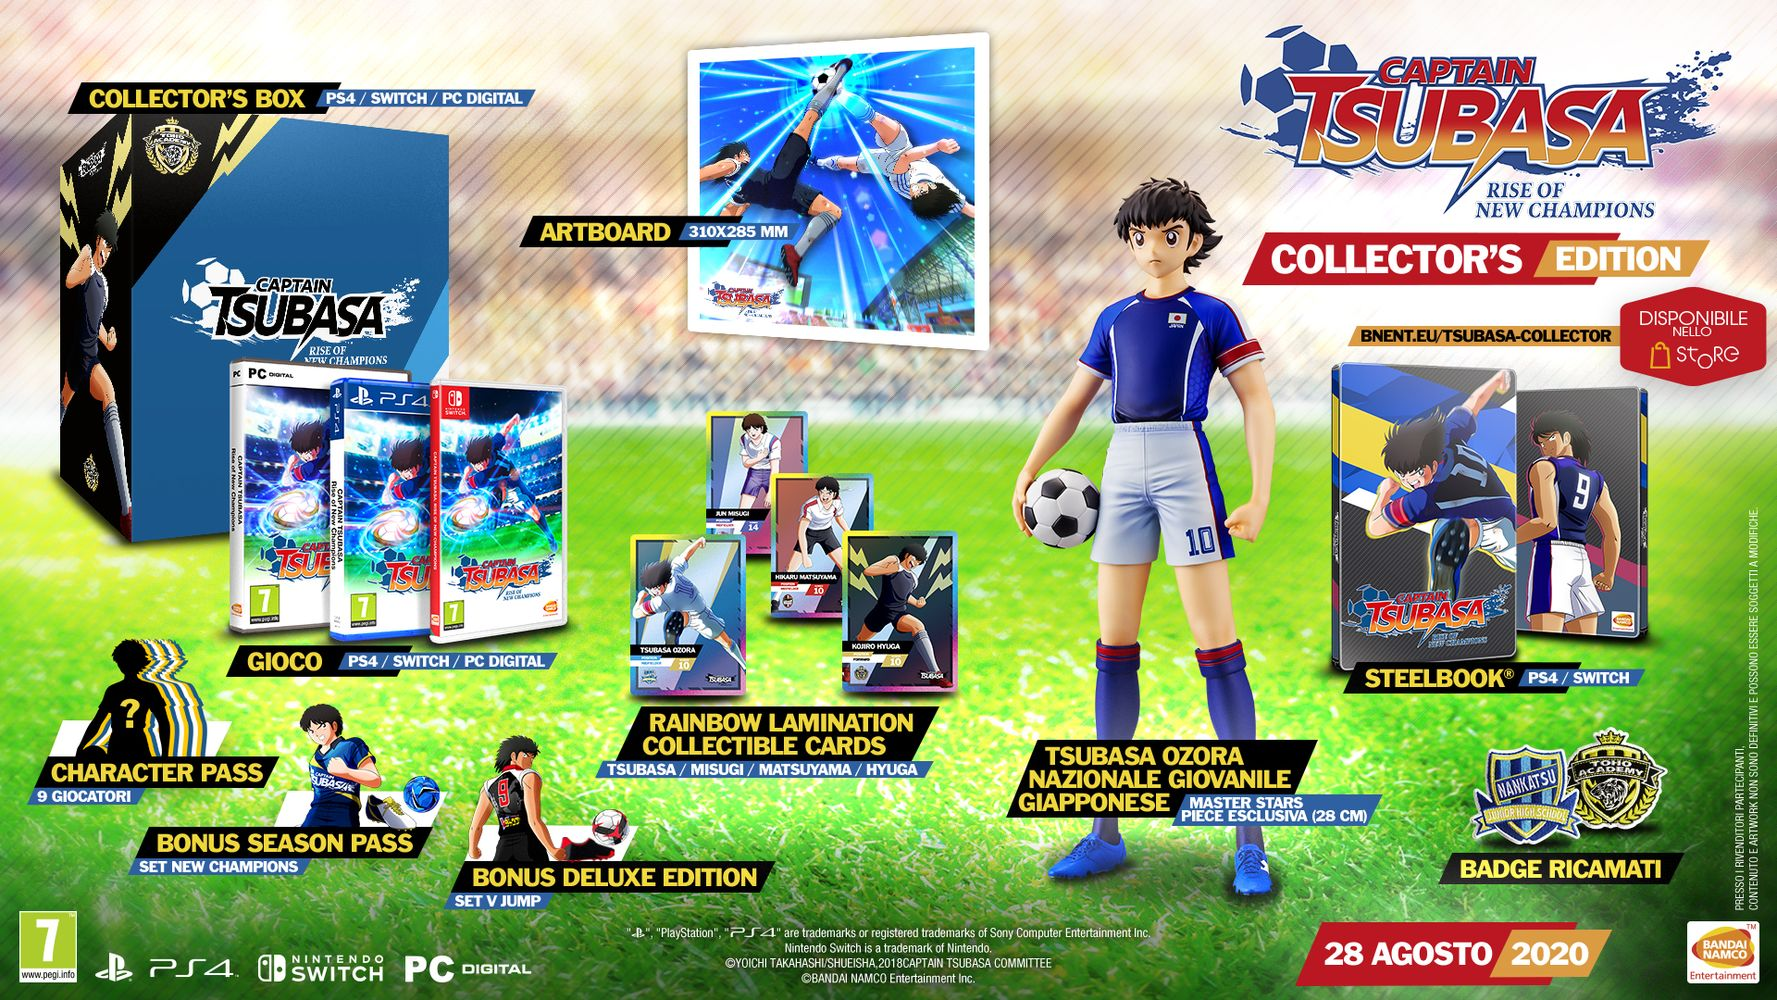 Collector's Edition - Captain Tsubasa: Rise of New Champions